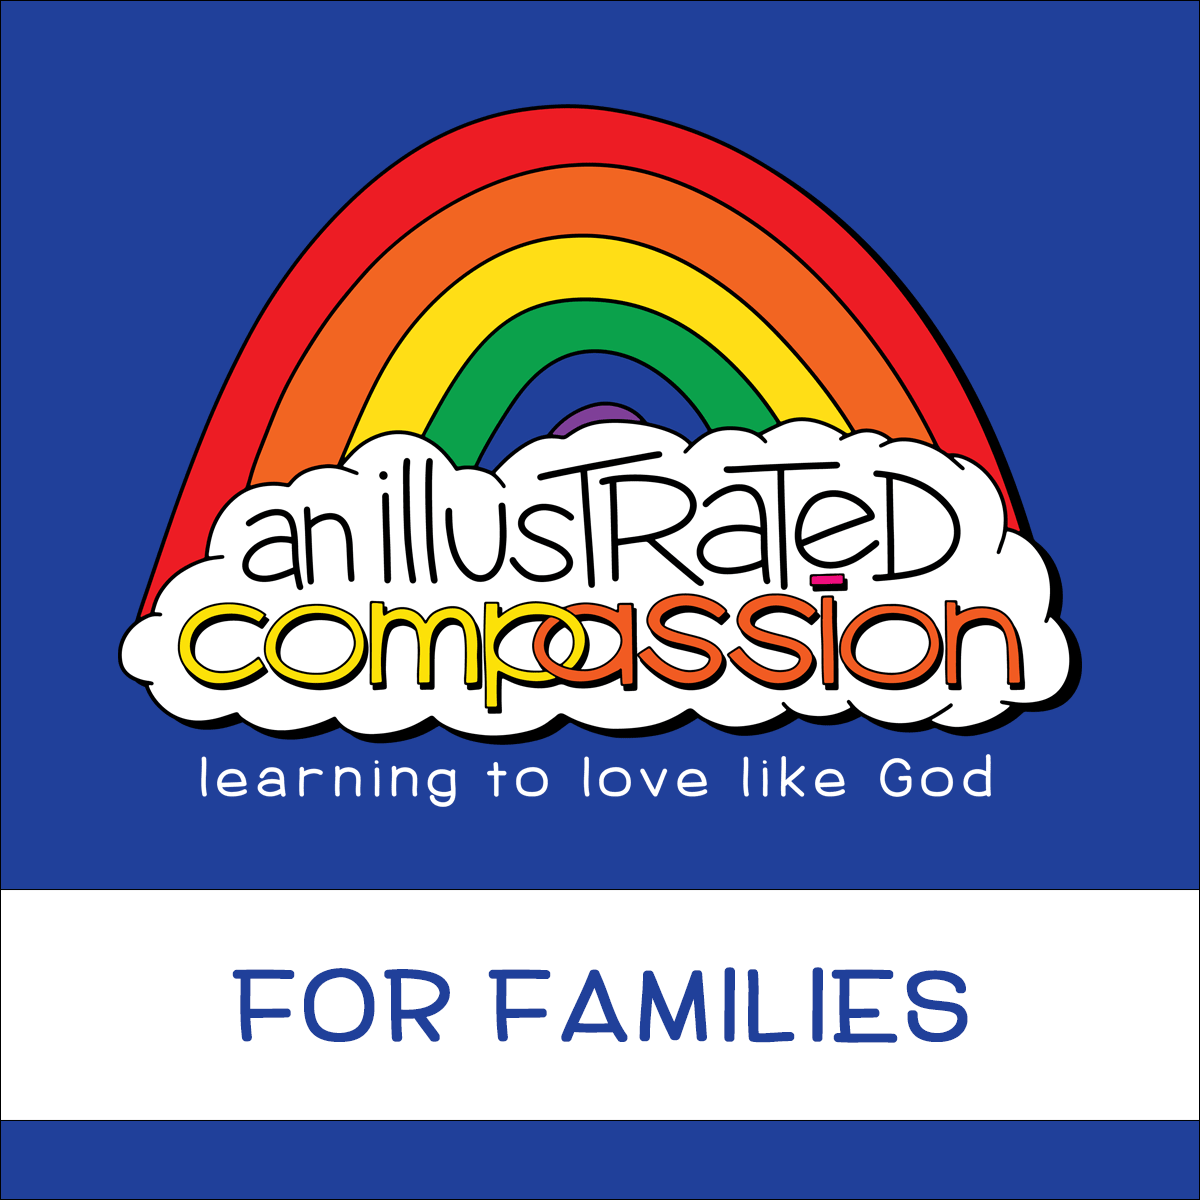 An Illustrated Compassion for Families